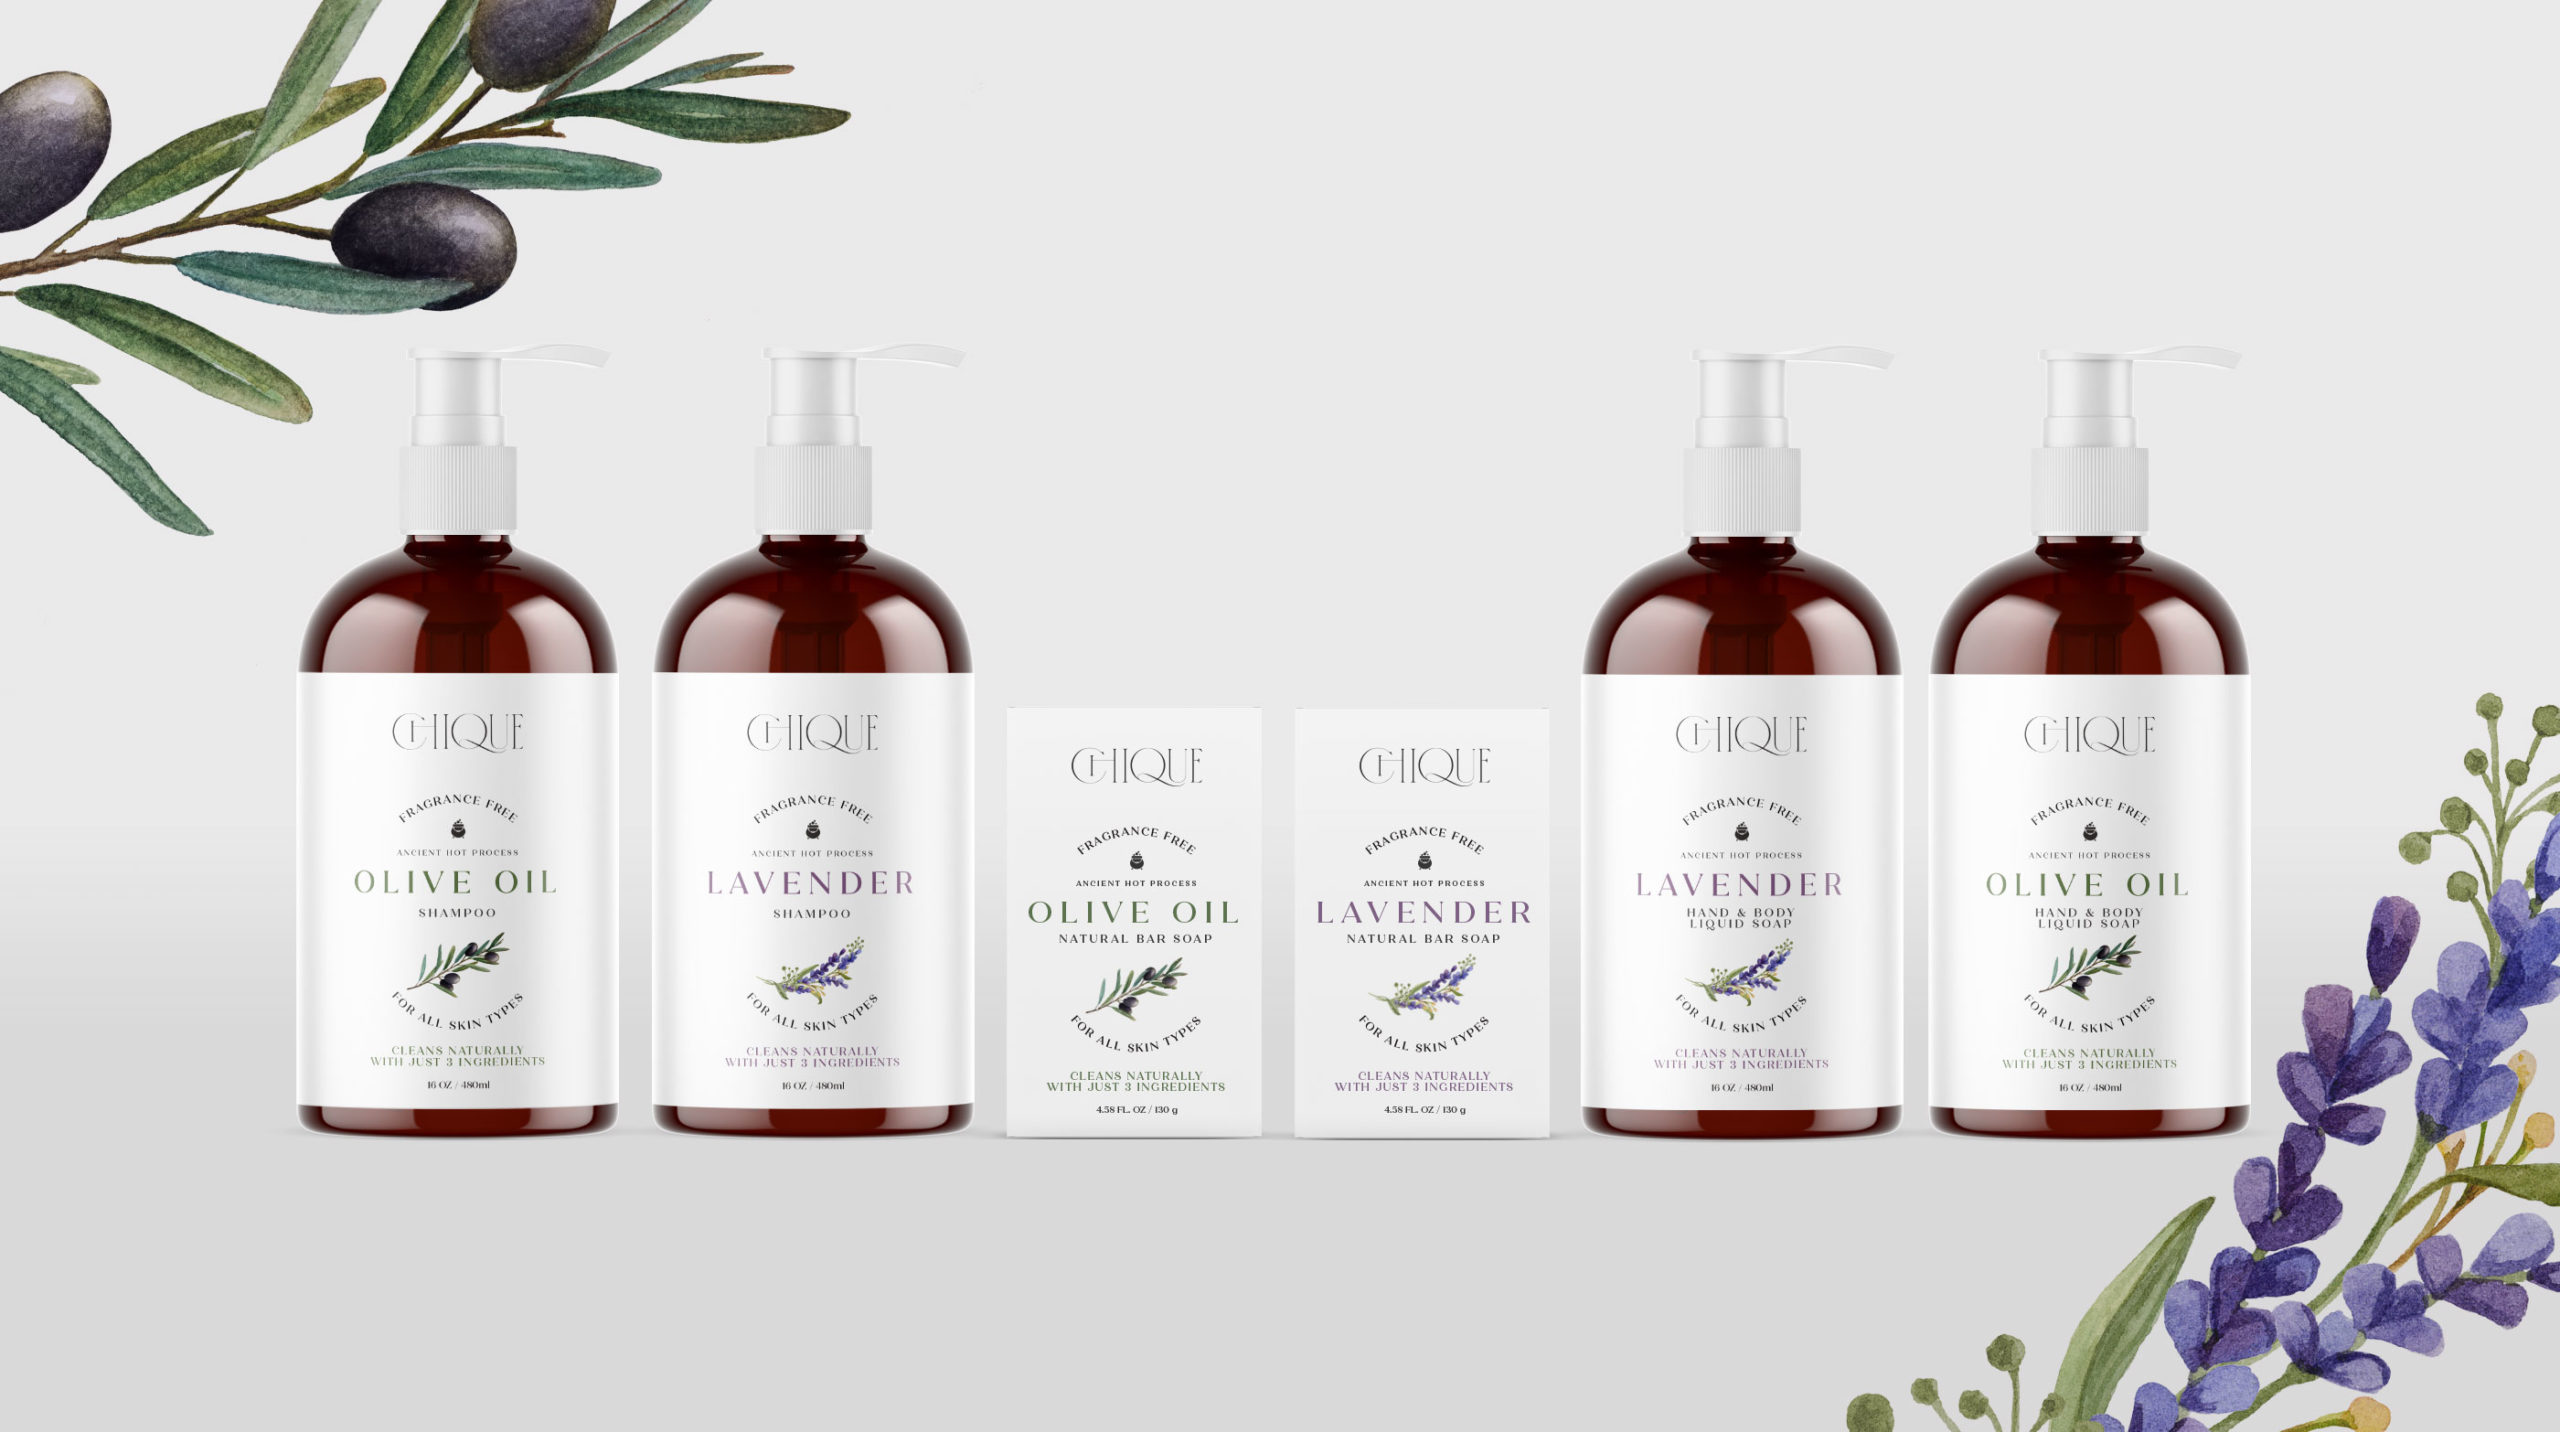 Packaging for Chique shampoos and soaps - BONB Creative & Design